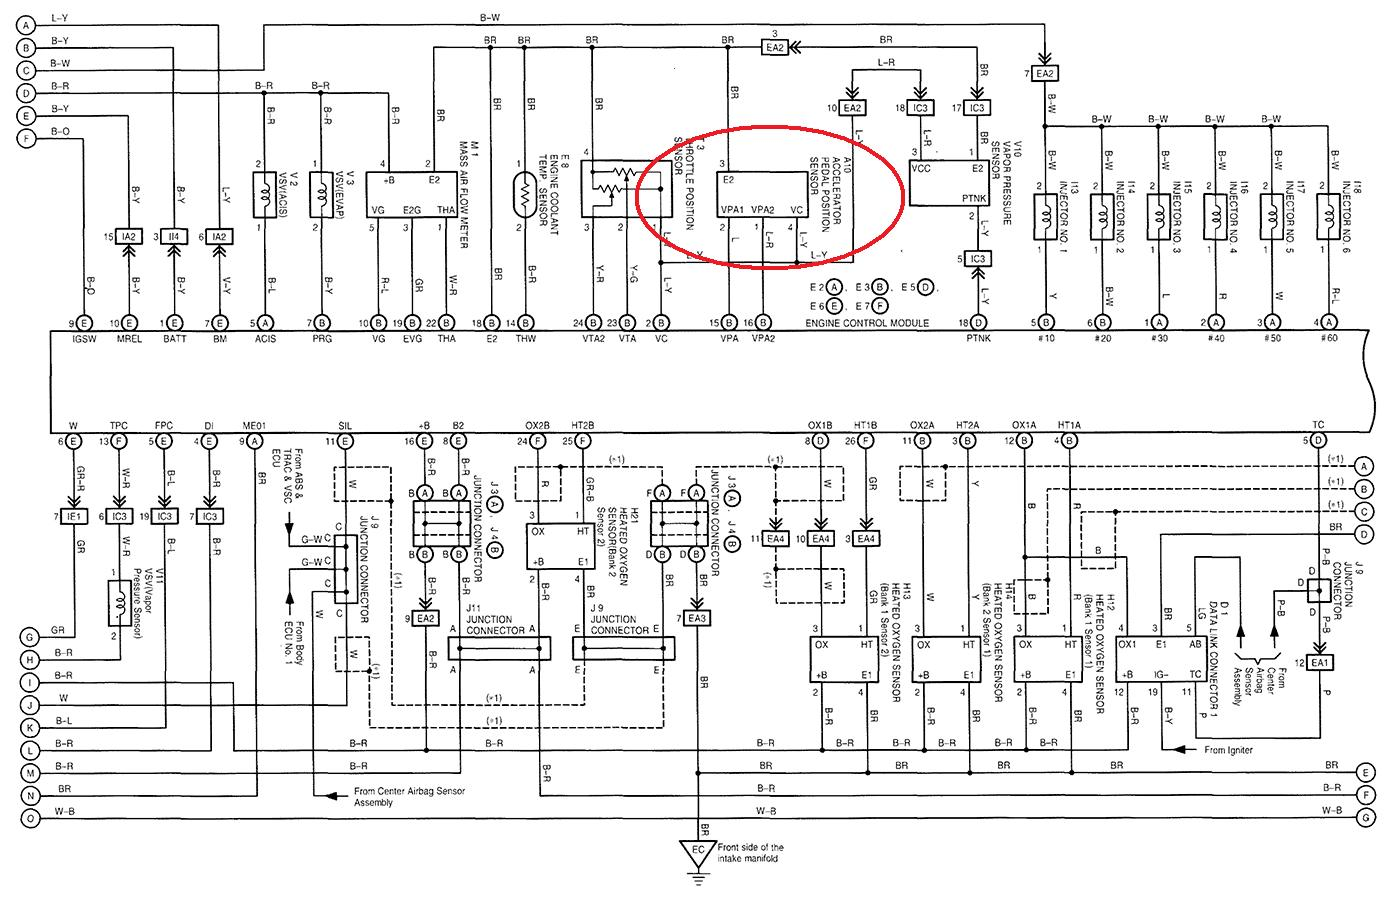 2013 08 03_145701_1 gs300 wiring diagram coleman furnace wiring diagram \u2022 free wiring lexus wiring harness pigtails at mifinder.co